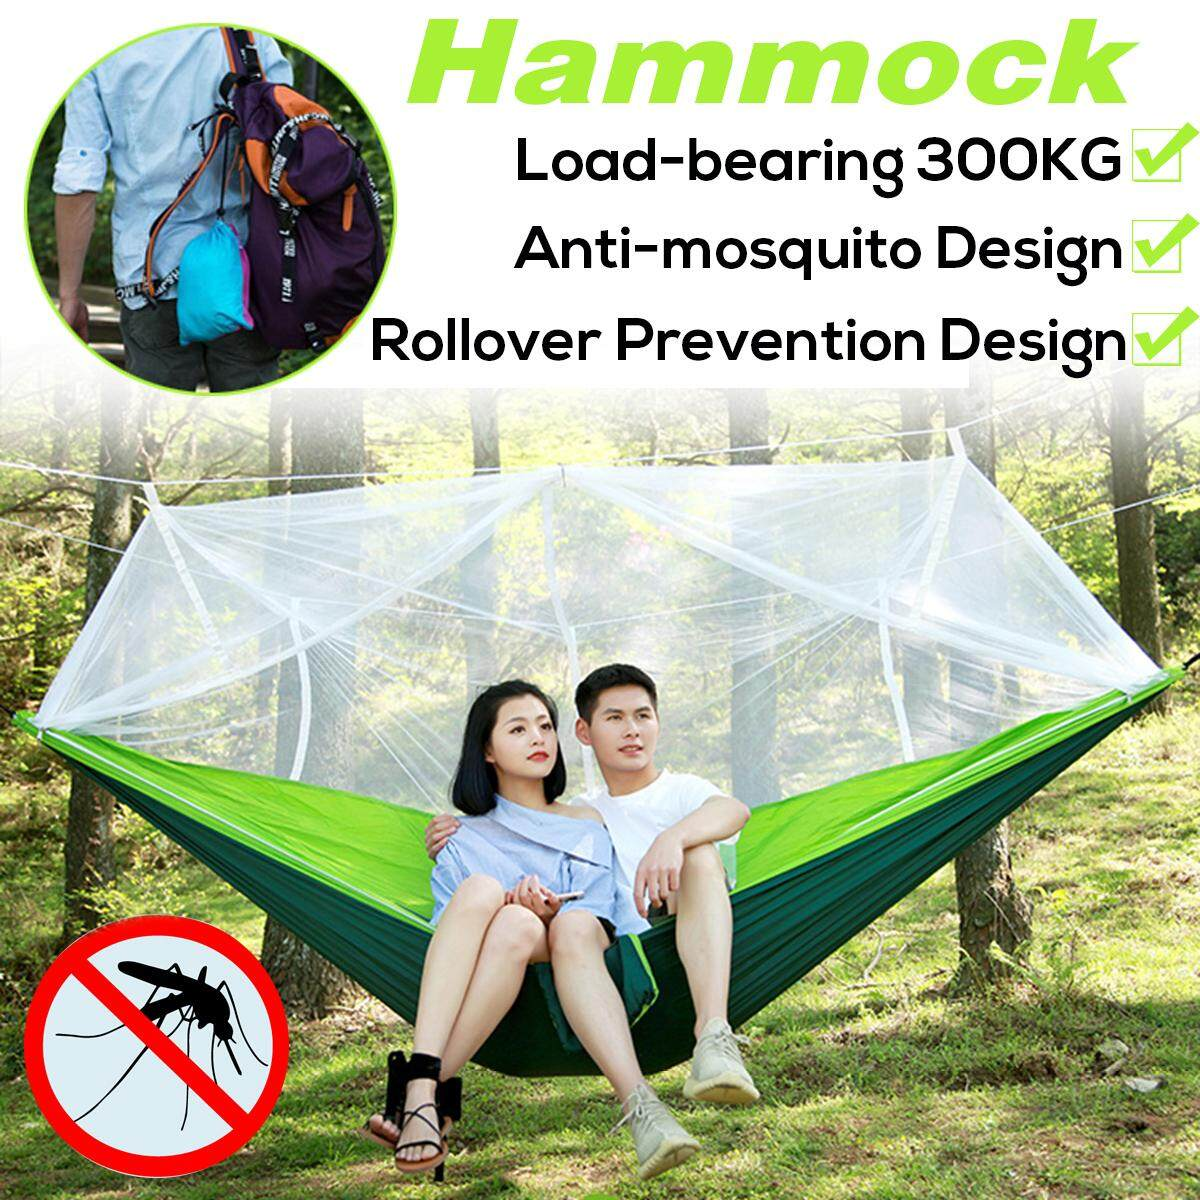 【Free Shipping + Flash Deal】Outdoor Travel Camping Hanging Hammock Bed Mosquito Net Set Capacity 300KG